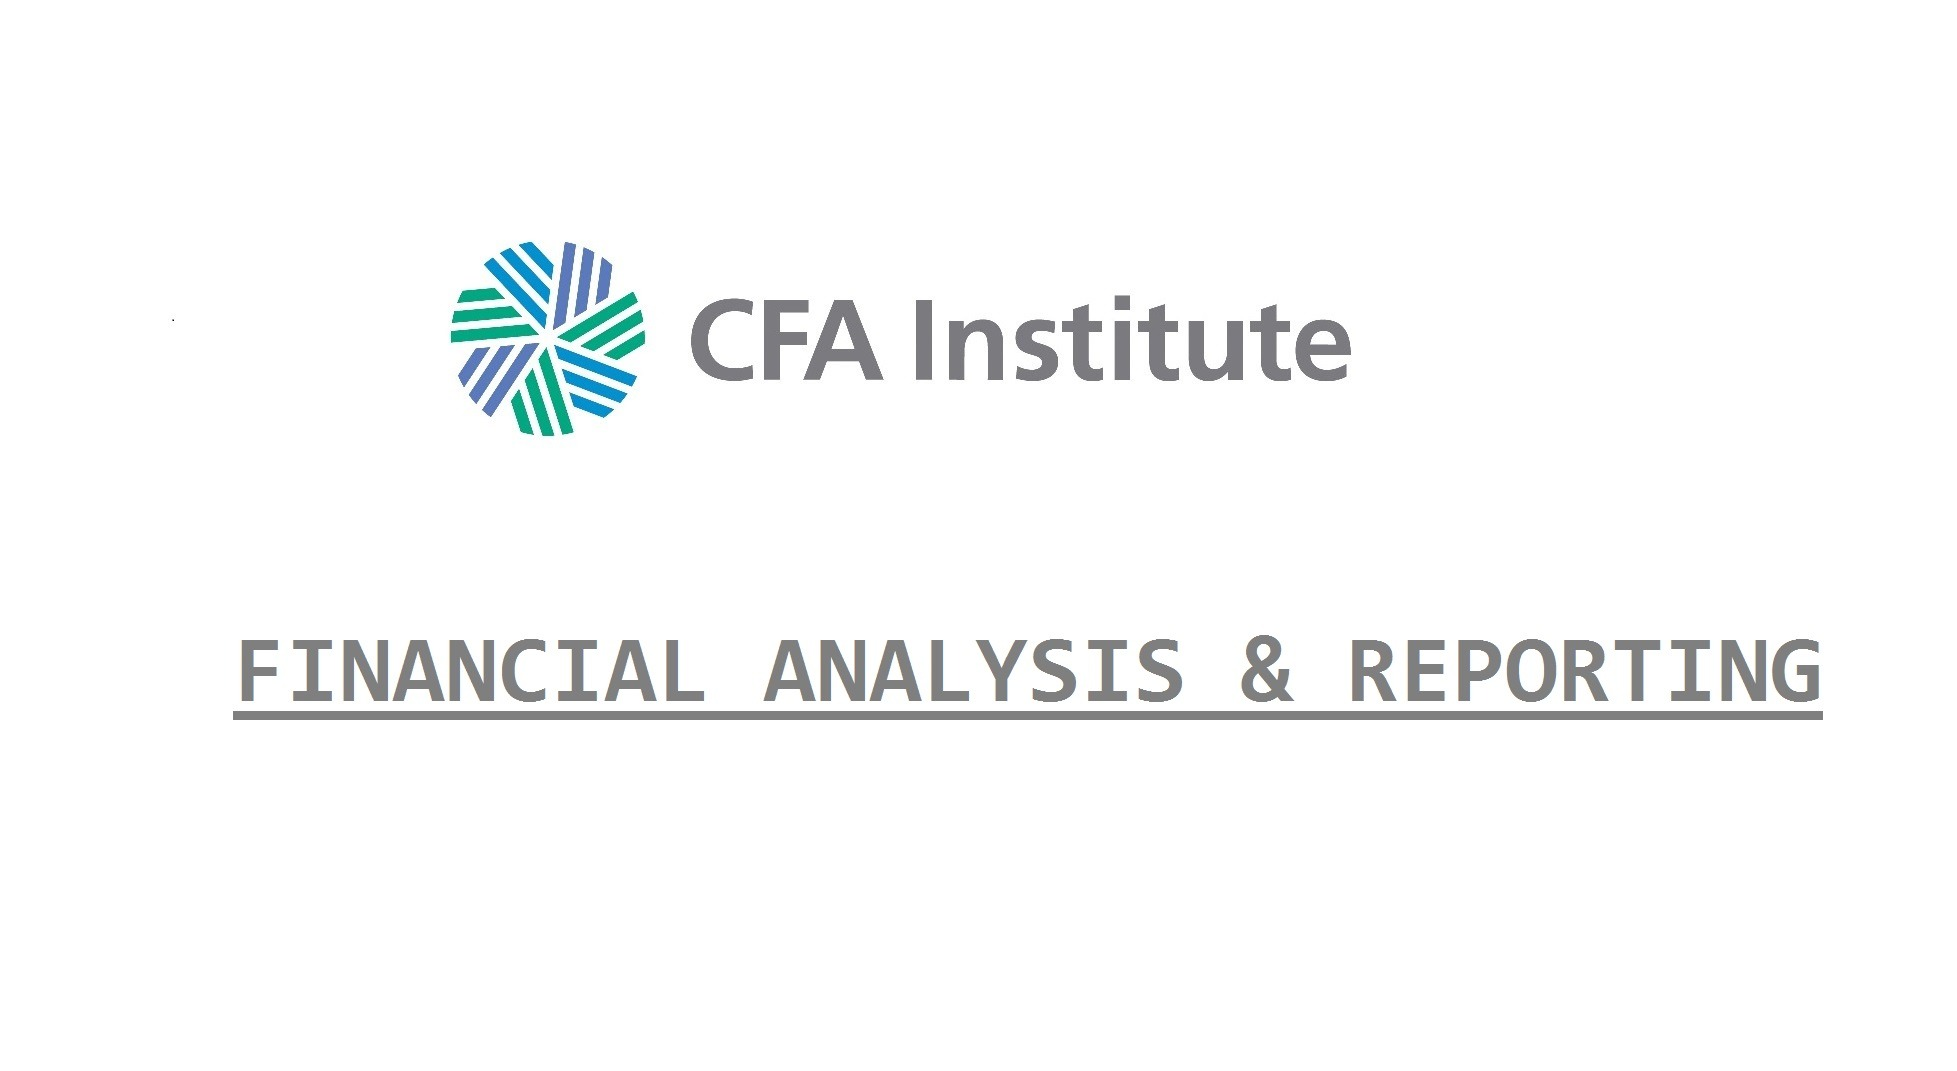 CFA Financial Analysis & Reporting